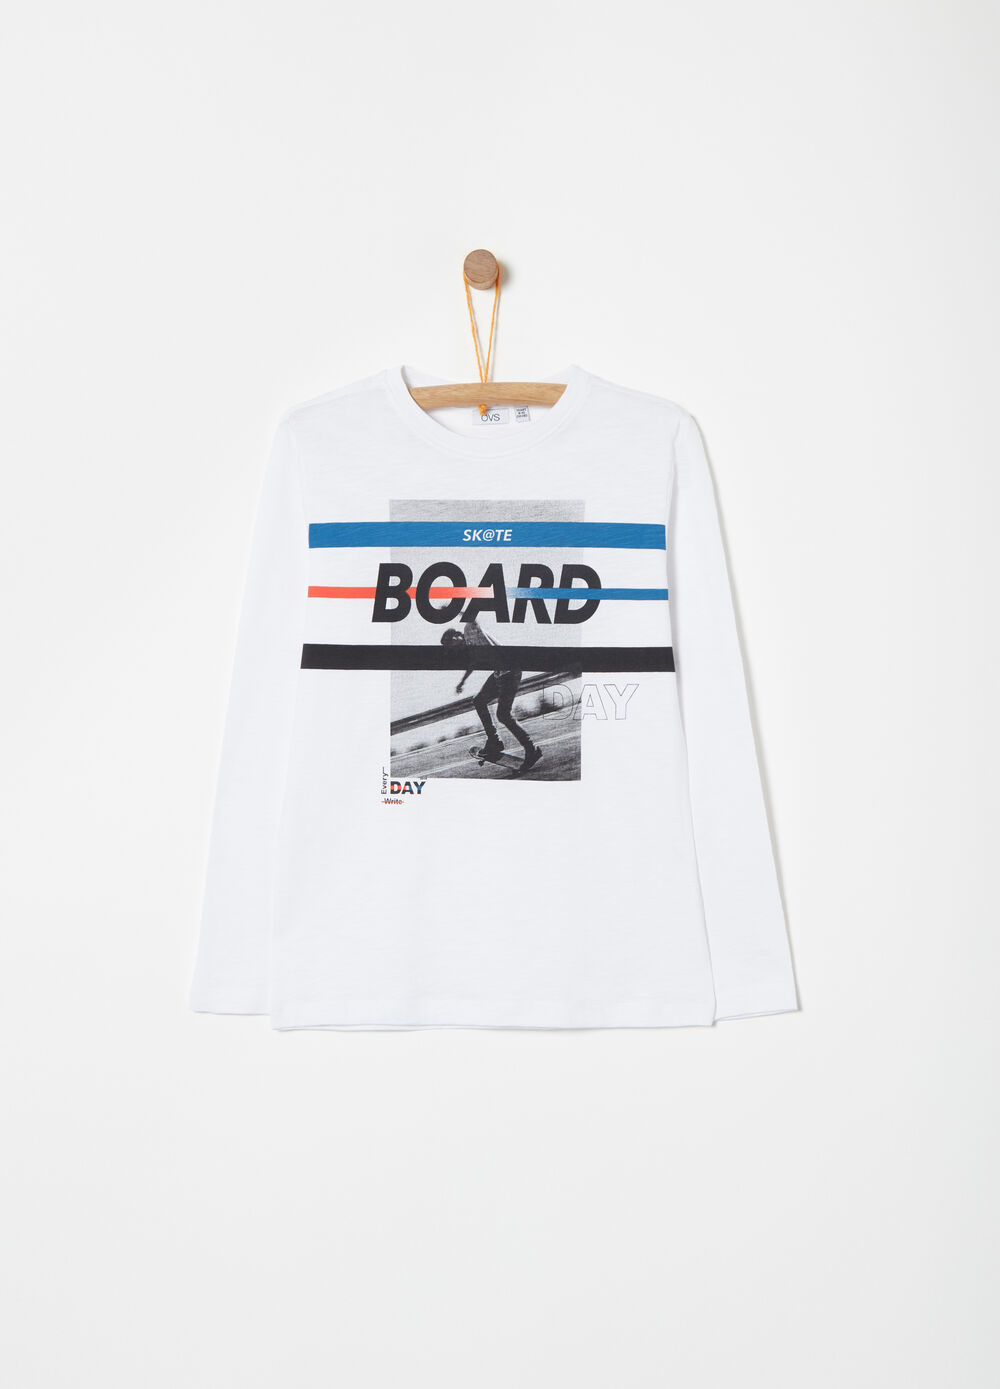 T-shirt in slub jersey with photographic print